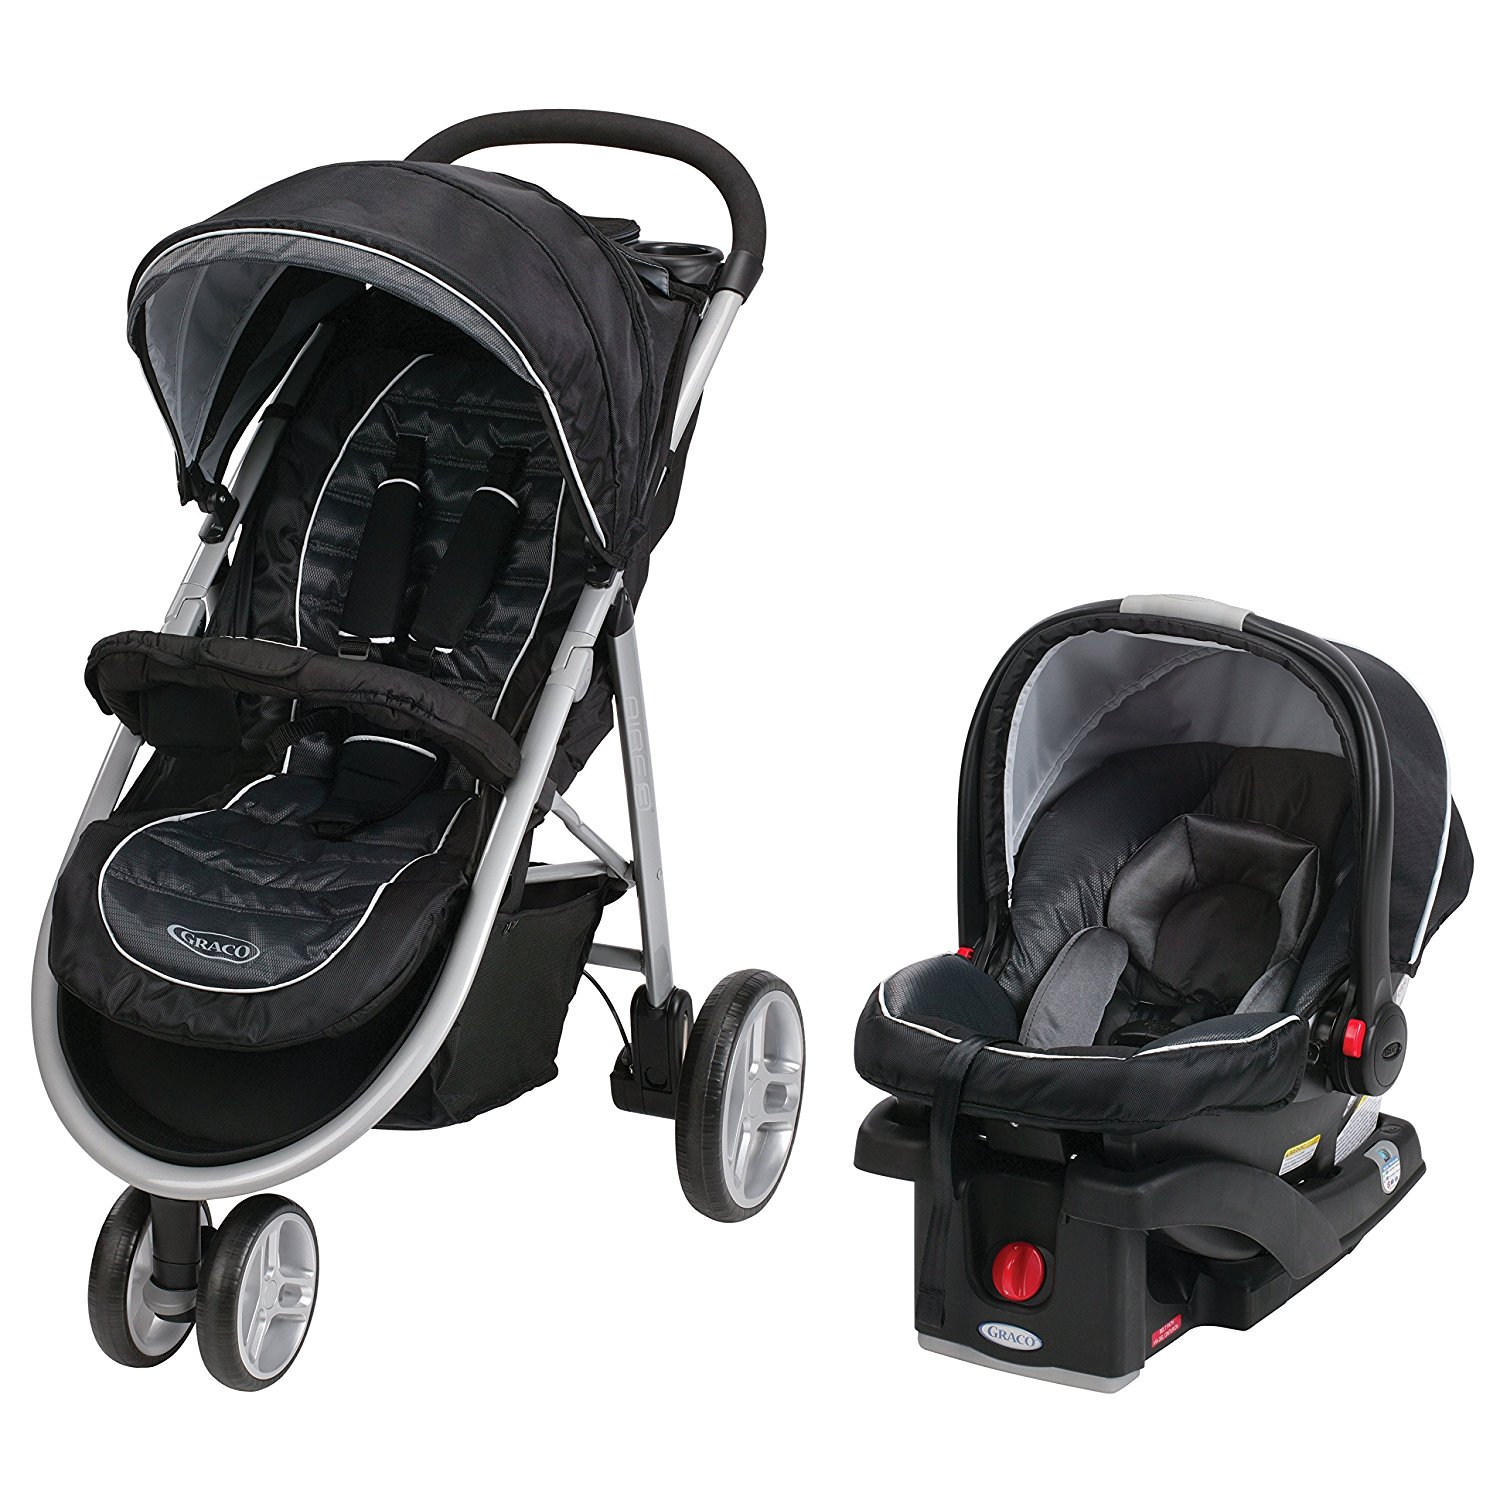 Graco Car Seat-Aire3 Travel System